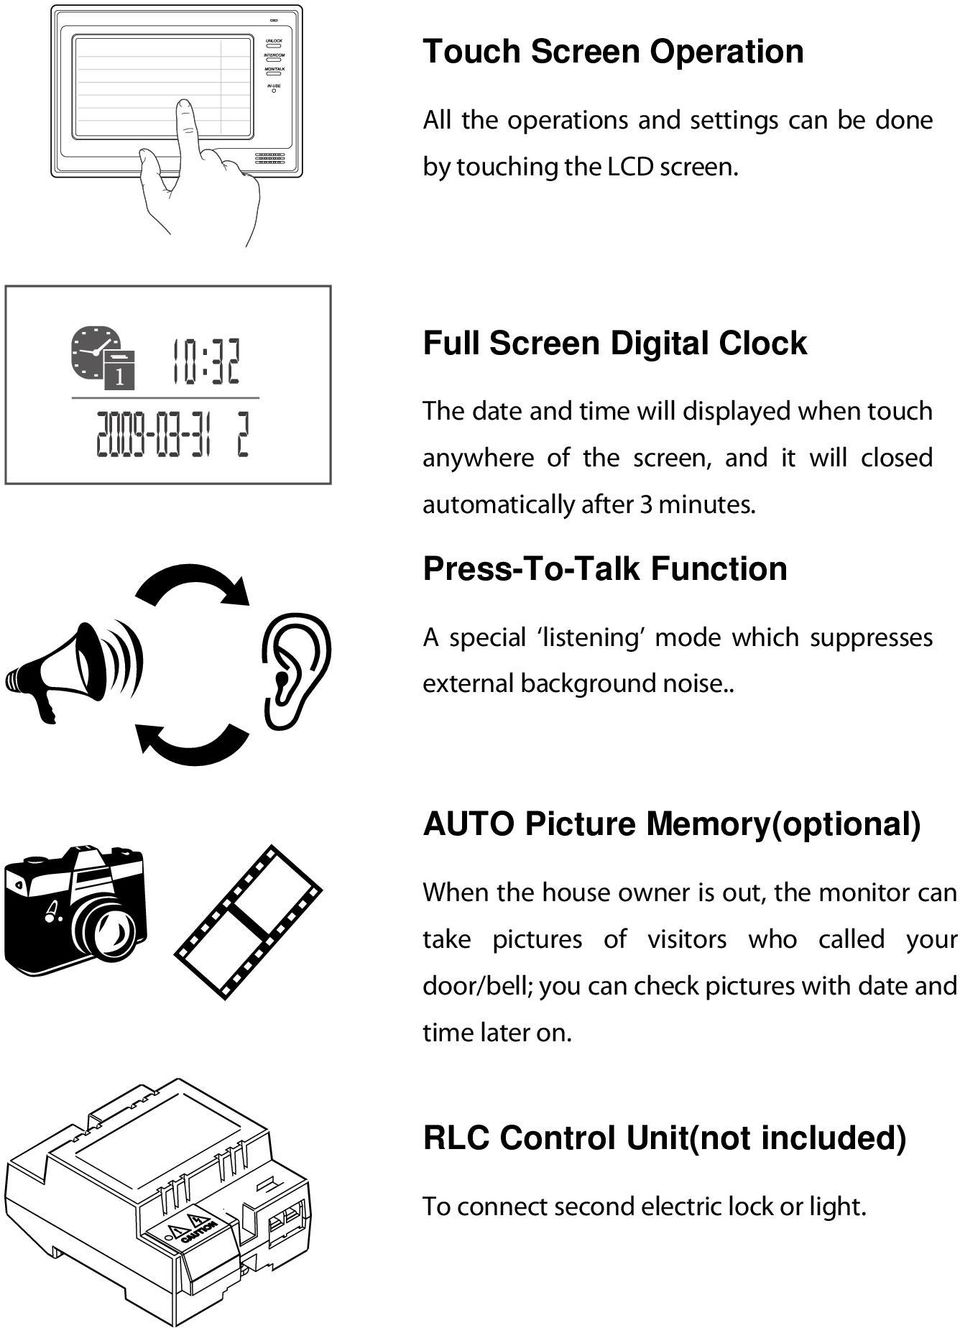 Press-To-Talk Function A special listening mode which suppresses external background noise.